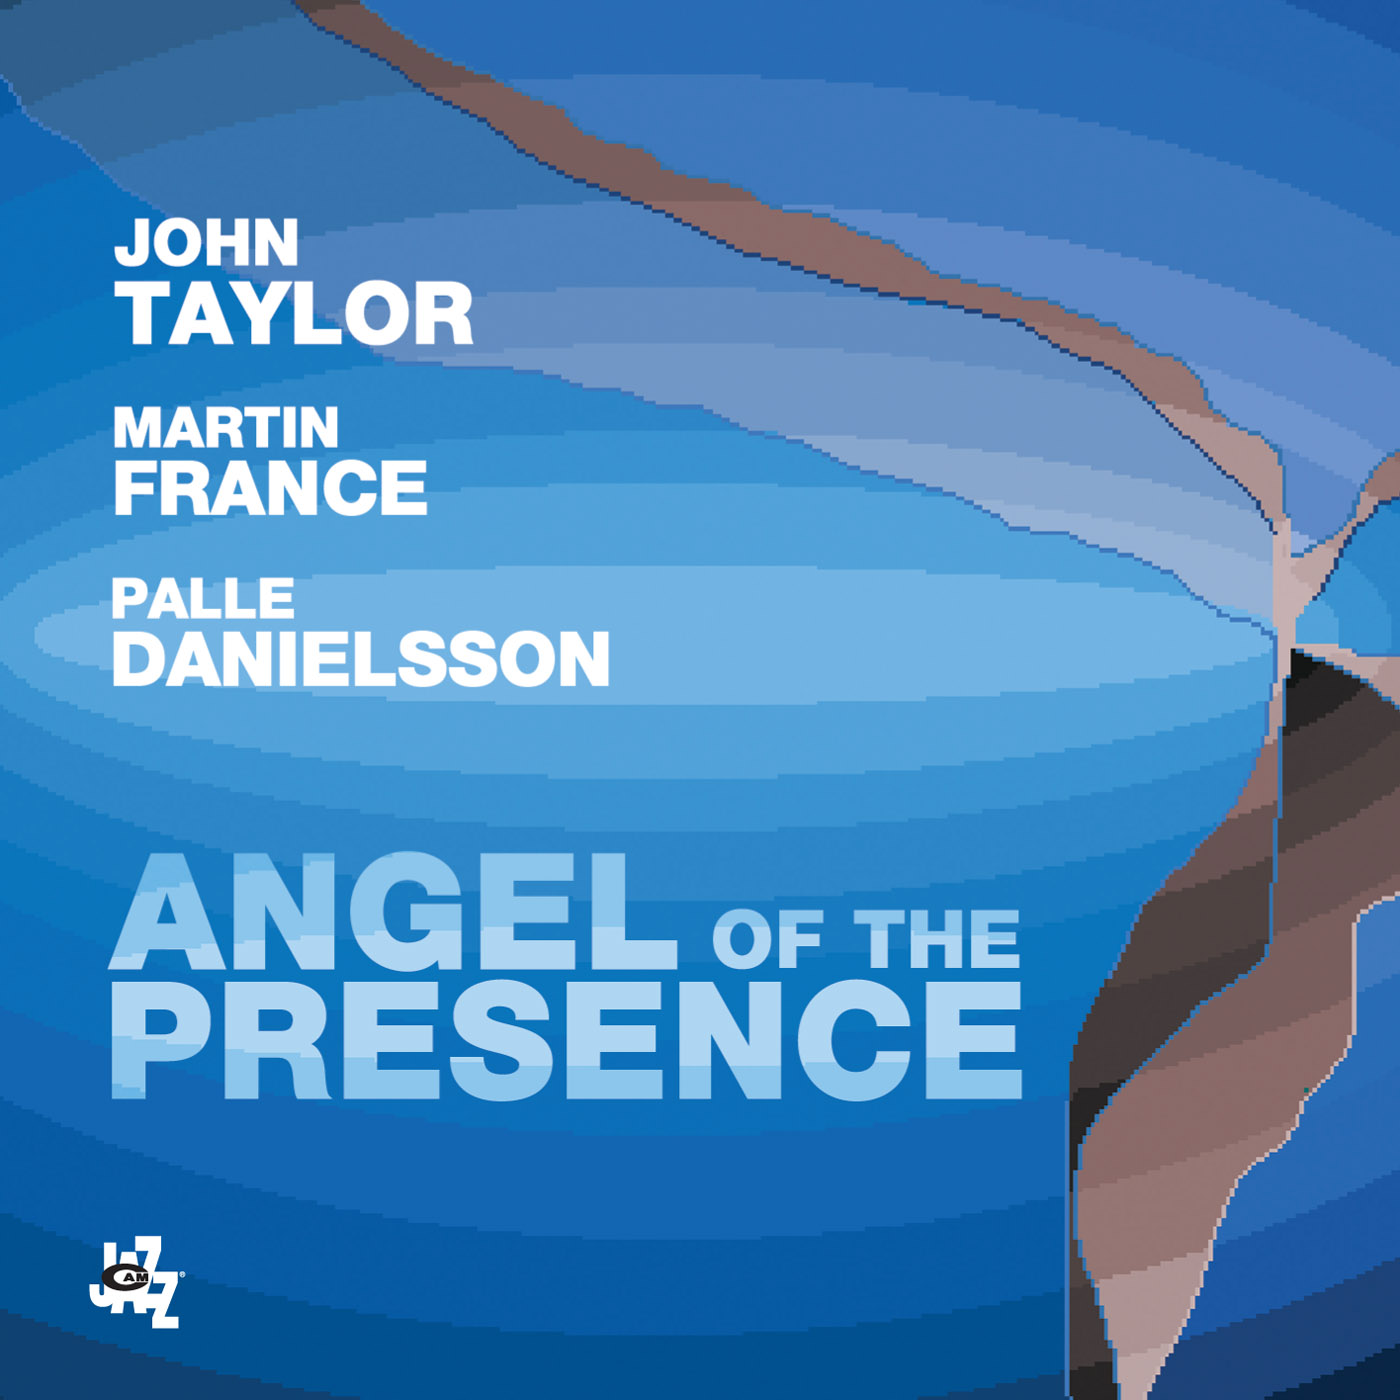 Angel of the Presence by John Taylor